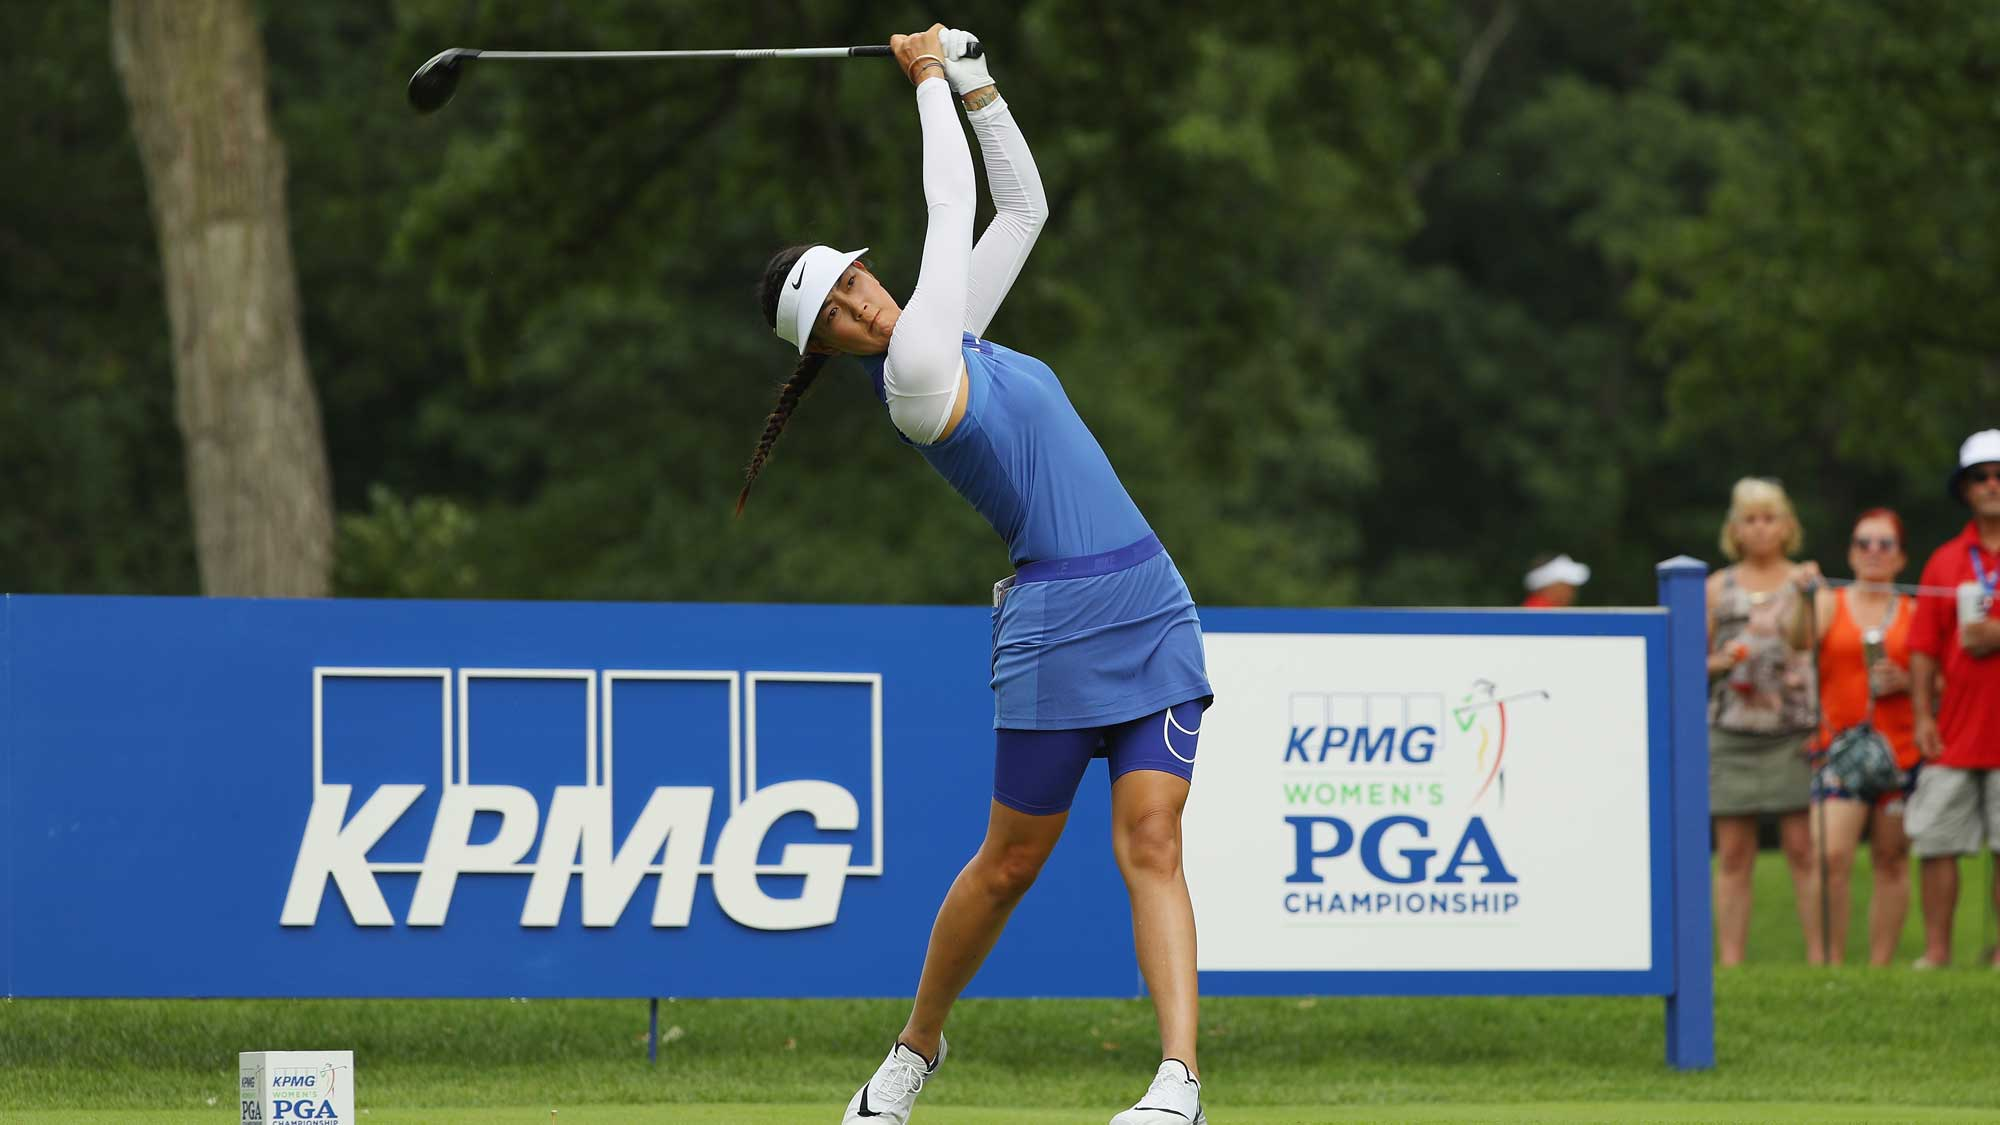 Michelle Wie hits a tee shot on the 16th hole during the second round of the 2017 KPMG Women's PGA Championship